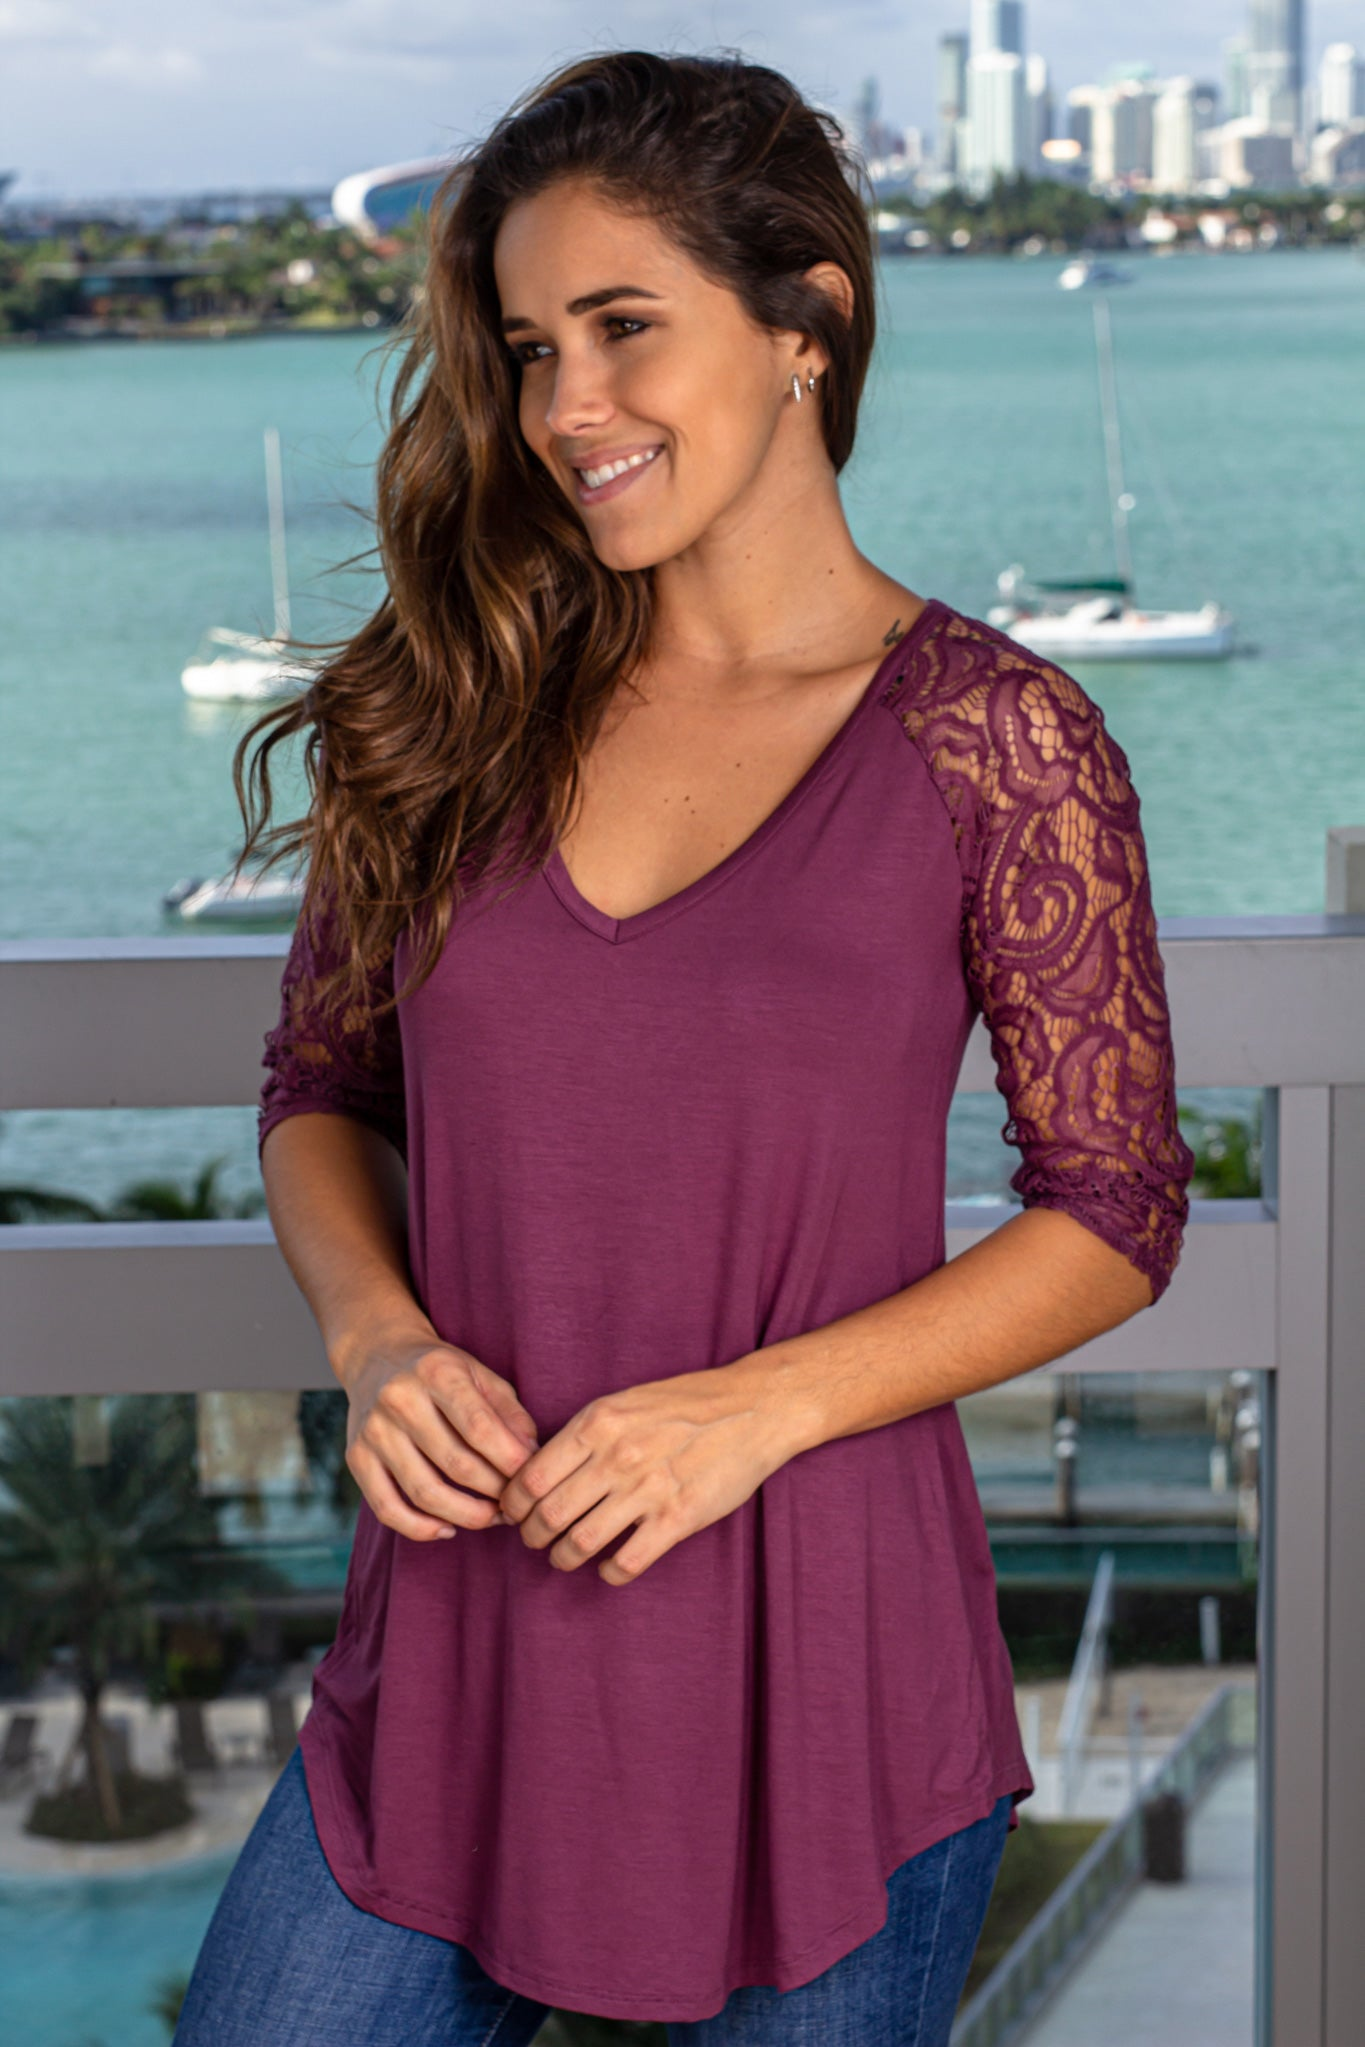 Eggplant Top with Lace